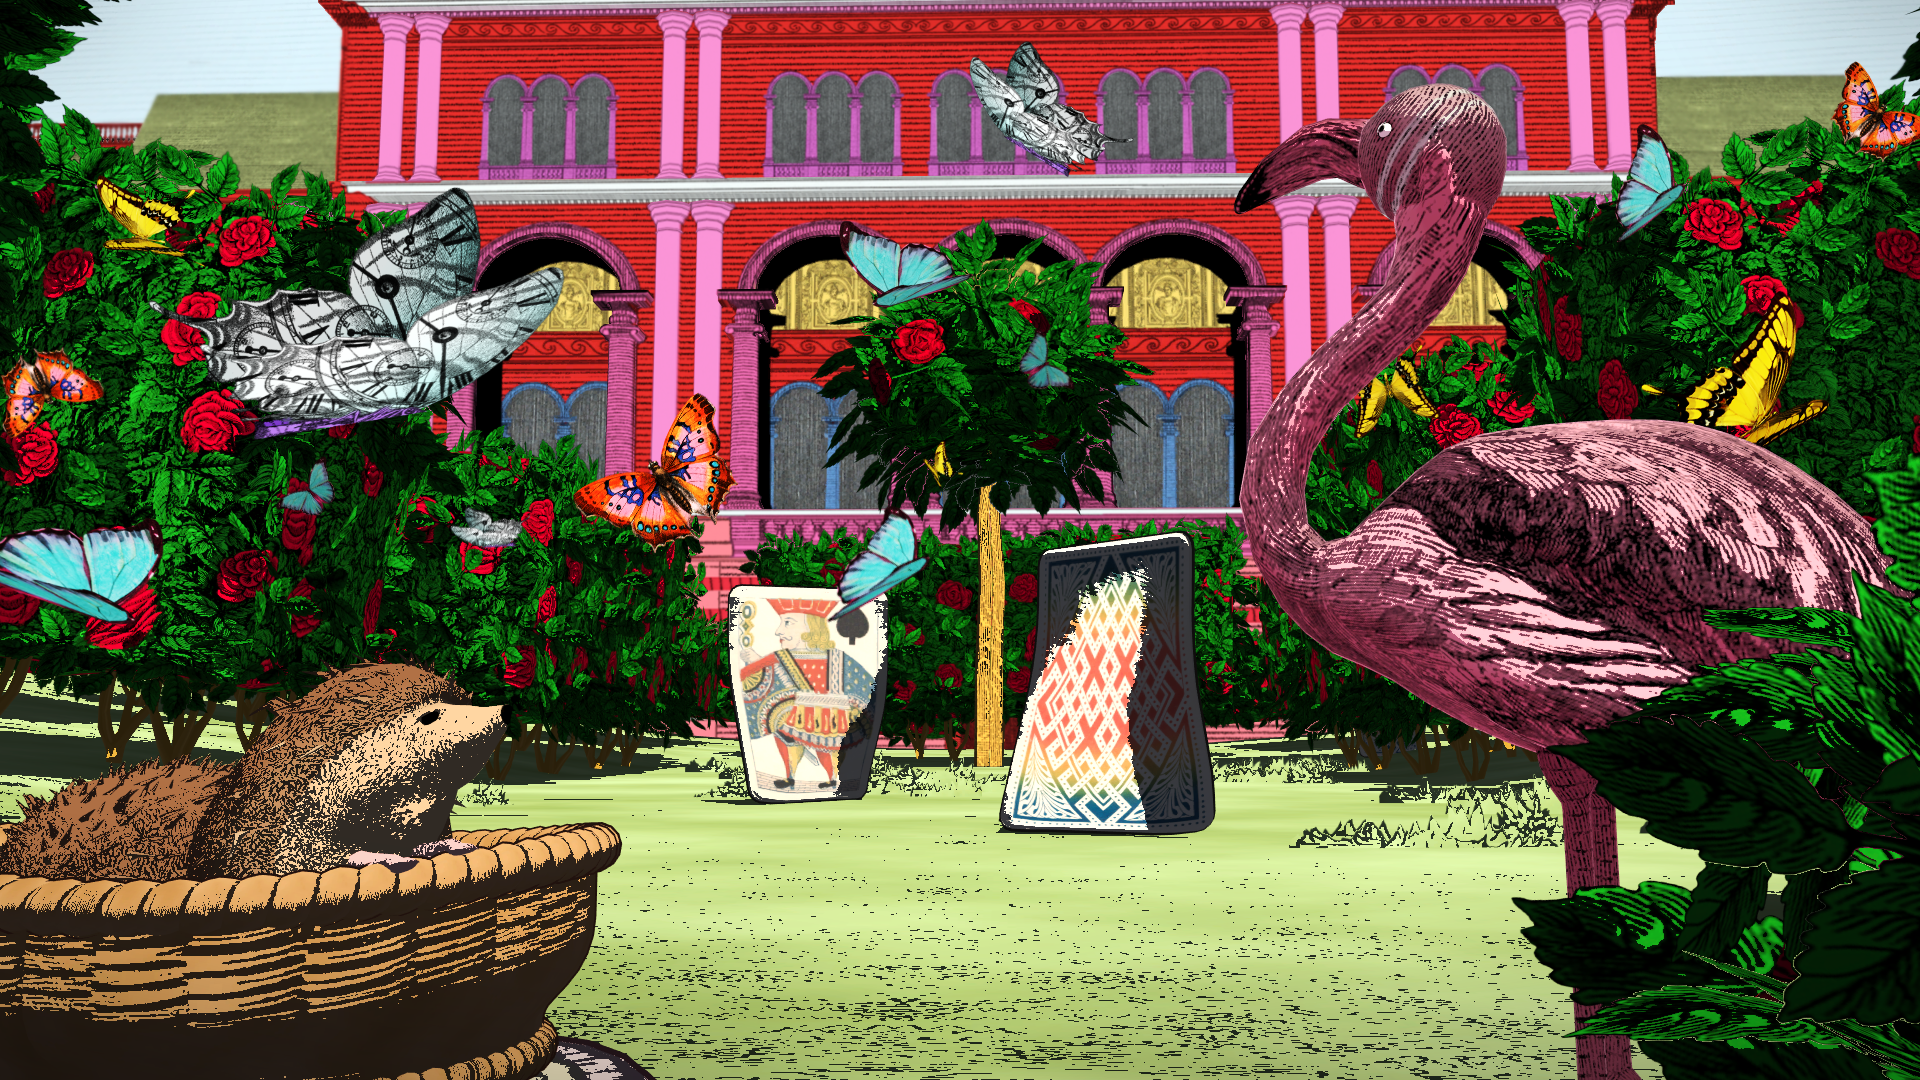 Still from the Curious Alice VR experience featuring artwork by Kristjana Williams